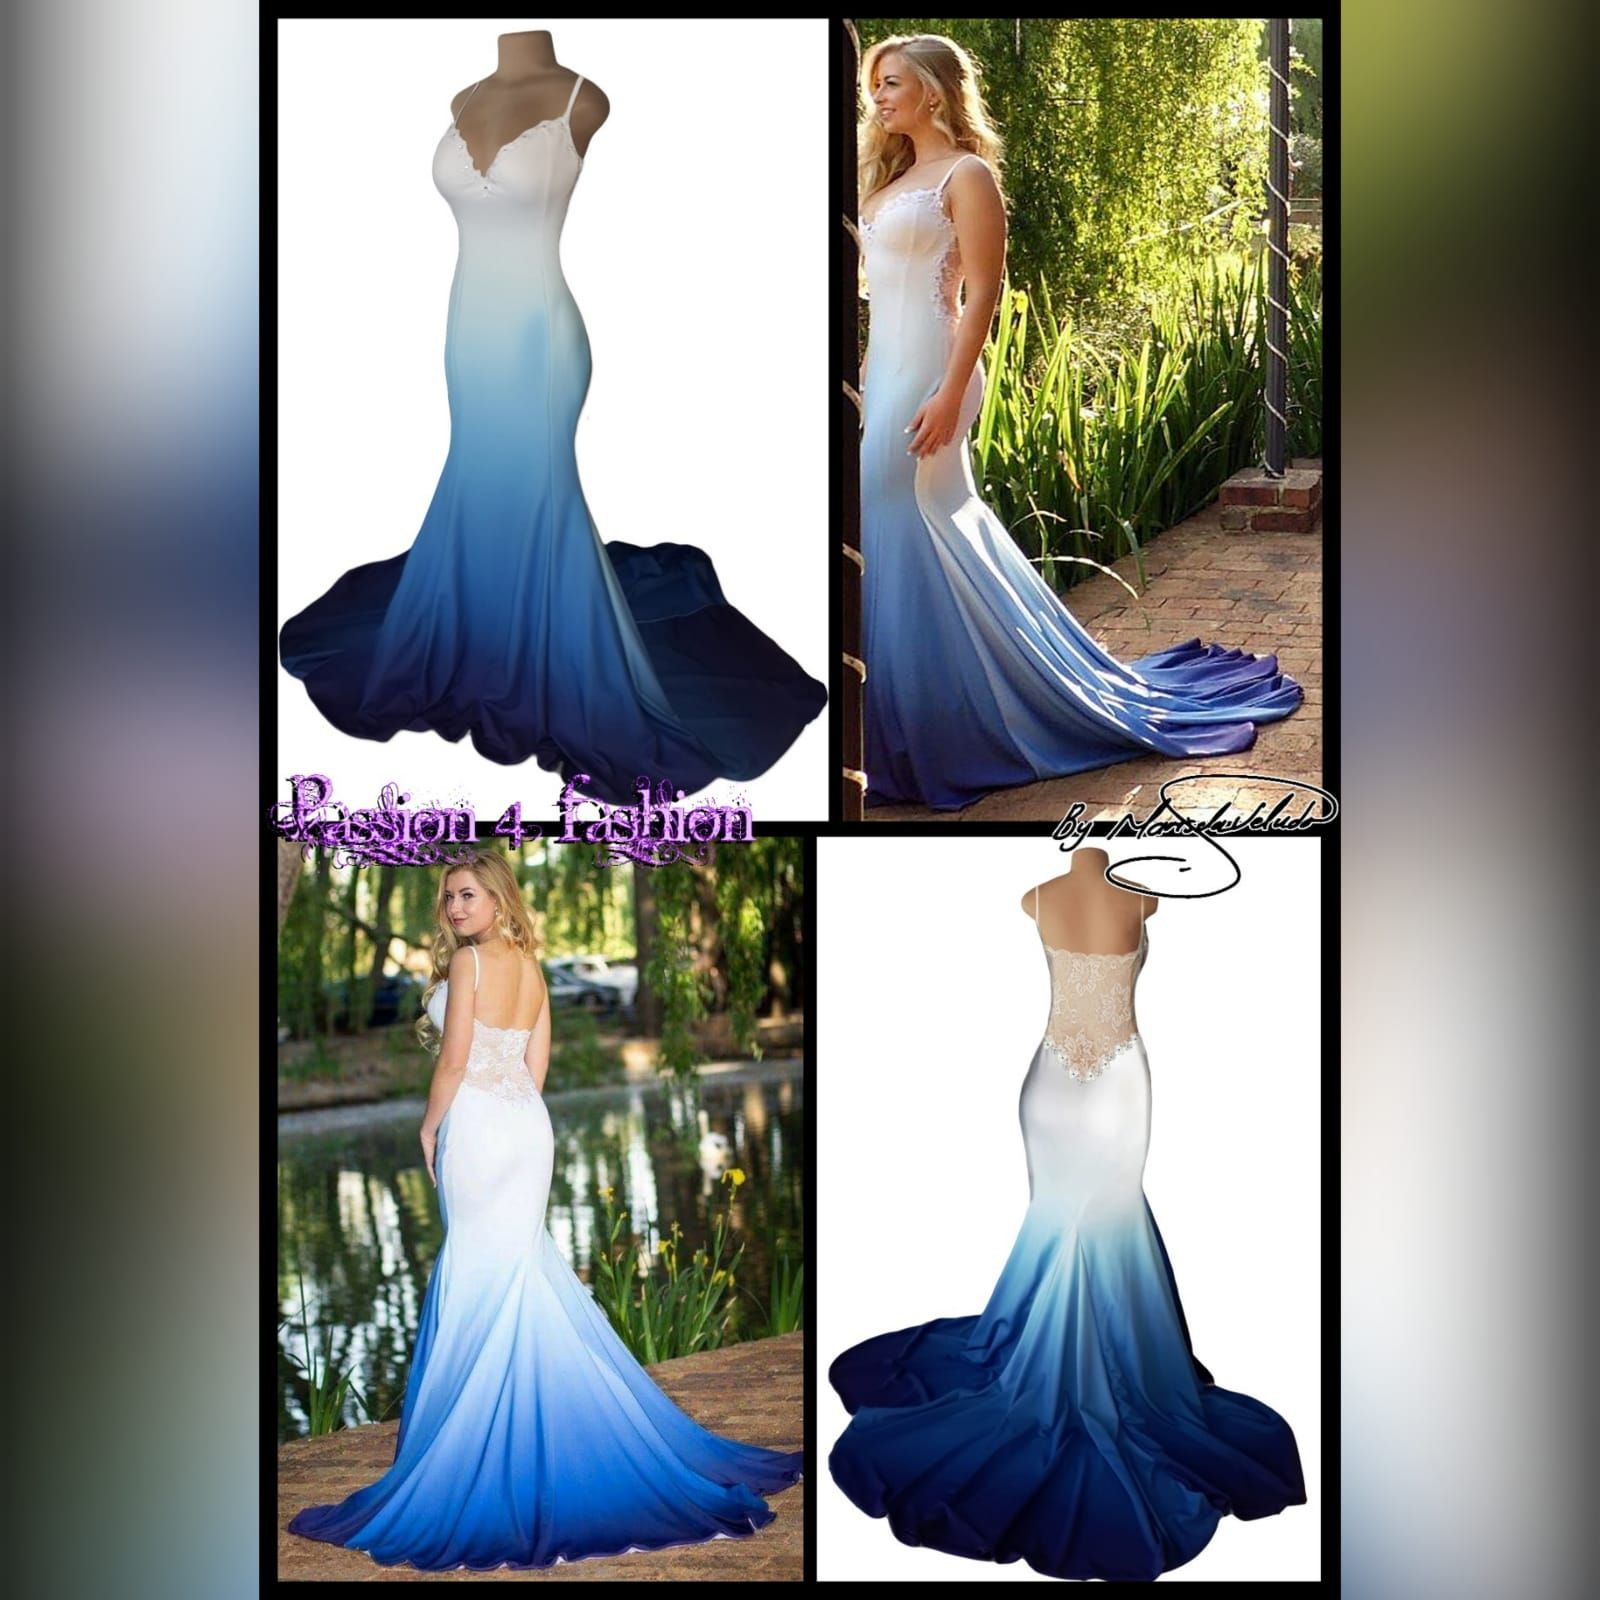 White Blue Ombre Soft Mermaid Prom Dress With A Sheer Lace Back Blue Wedding Dresses Mermaid Dresses Ombre Wedding Dress [ 1600 x 1600 Pixel ]